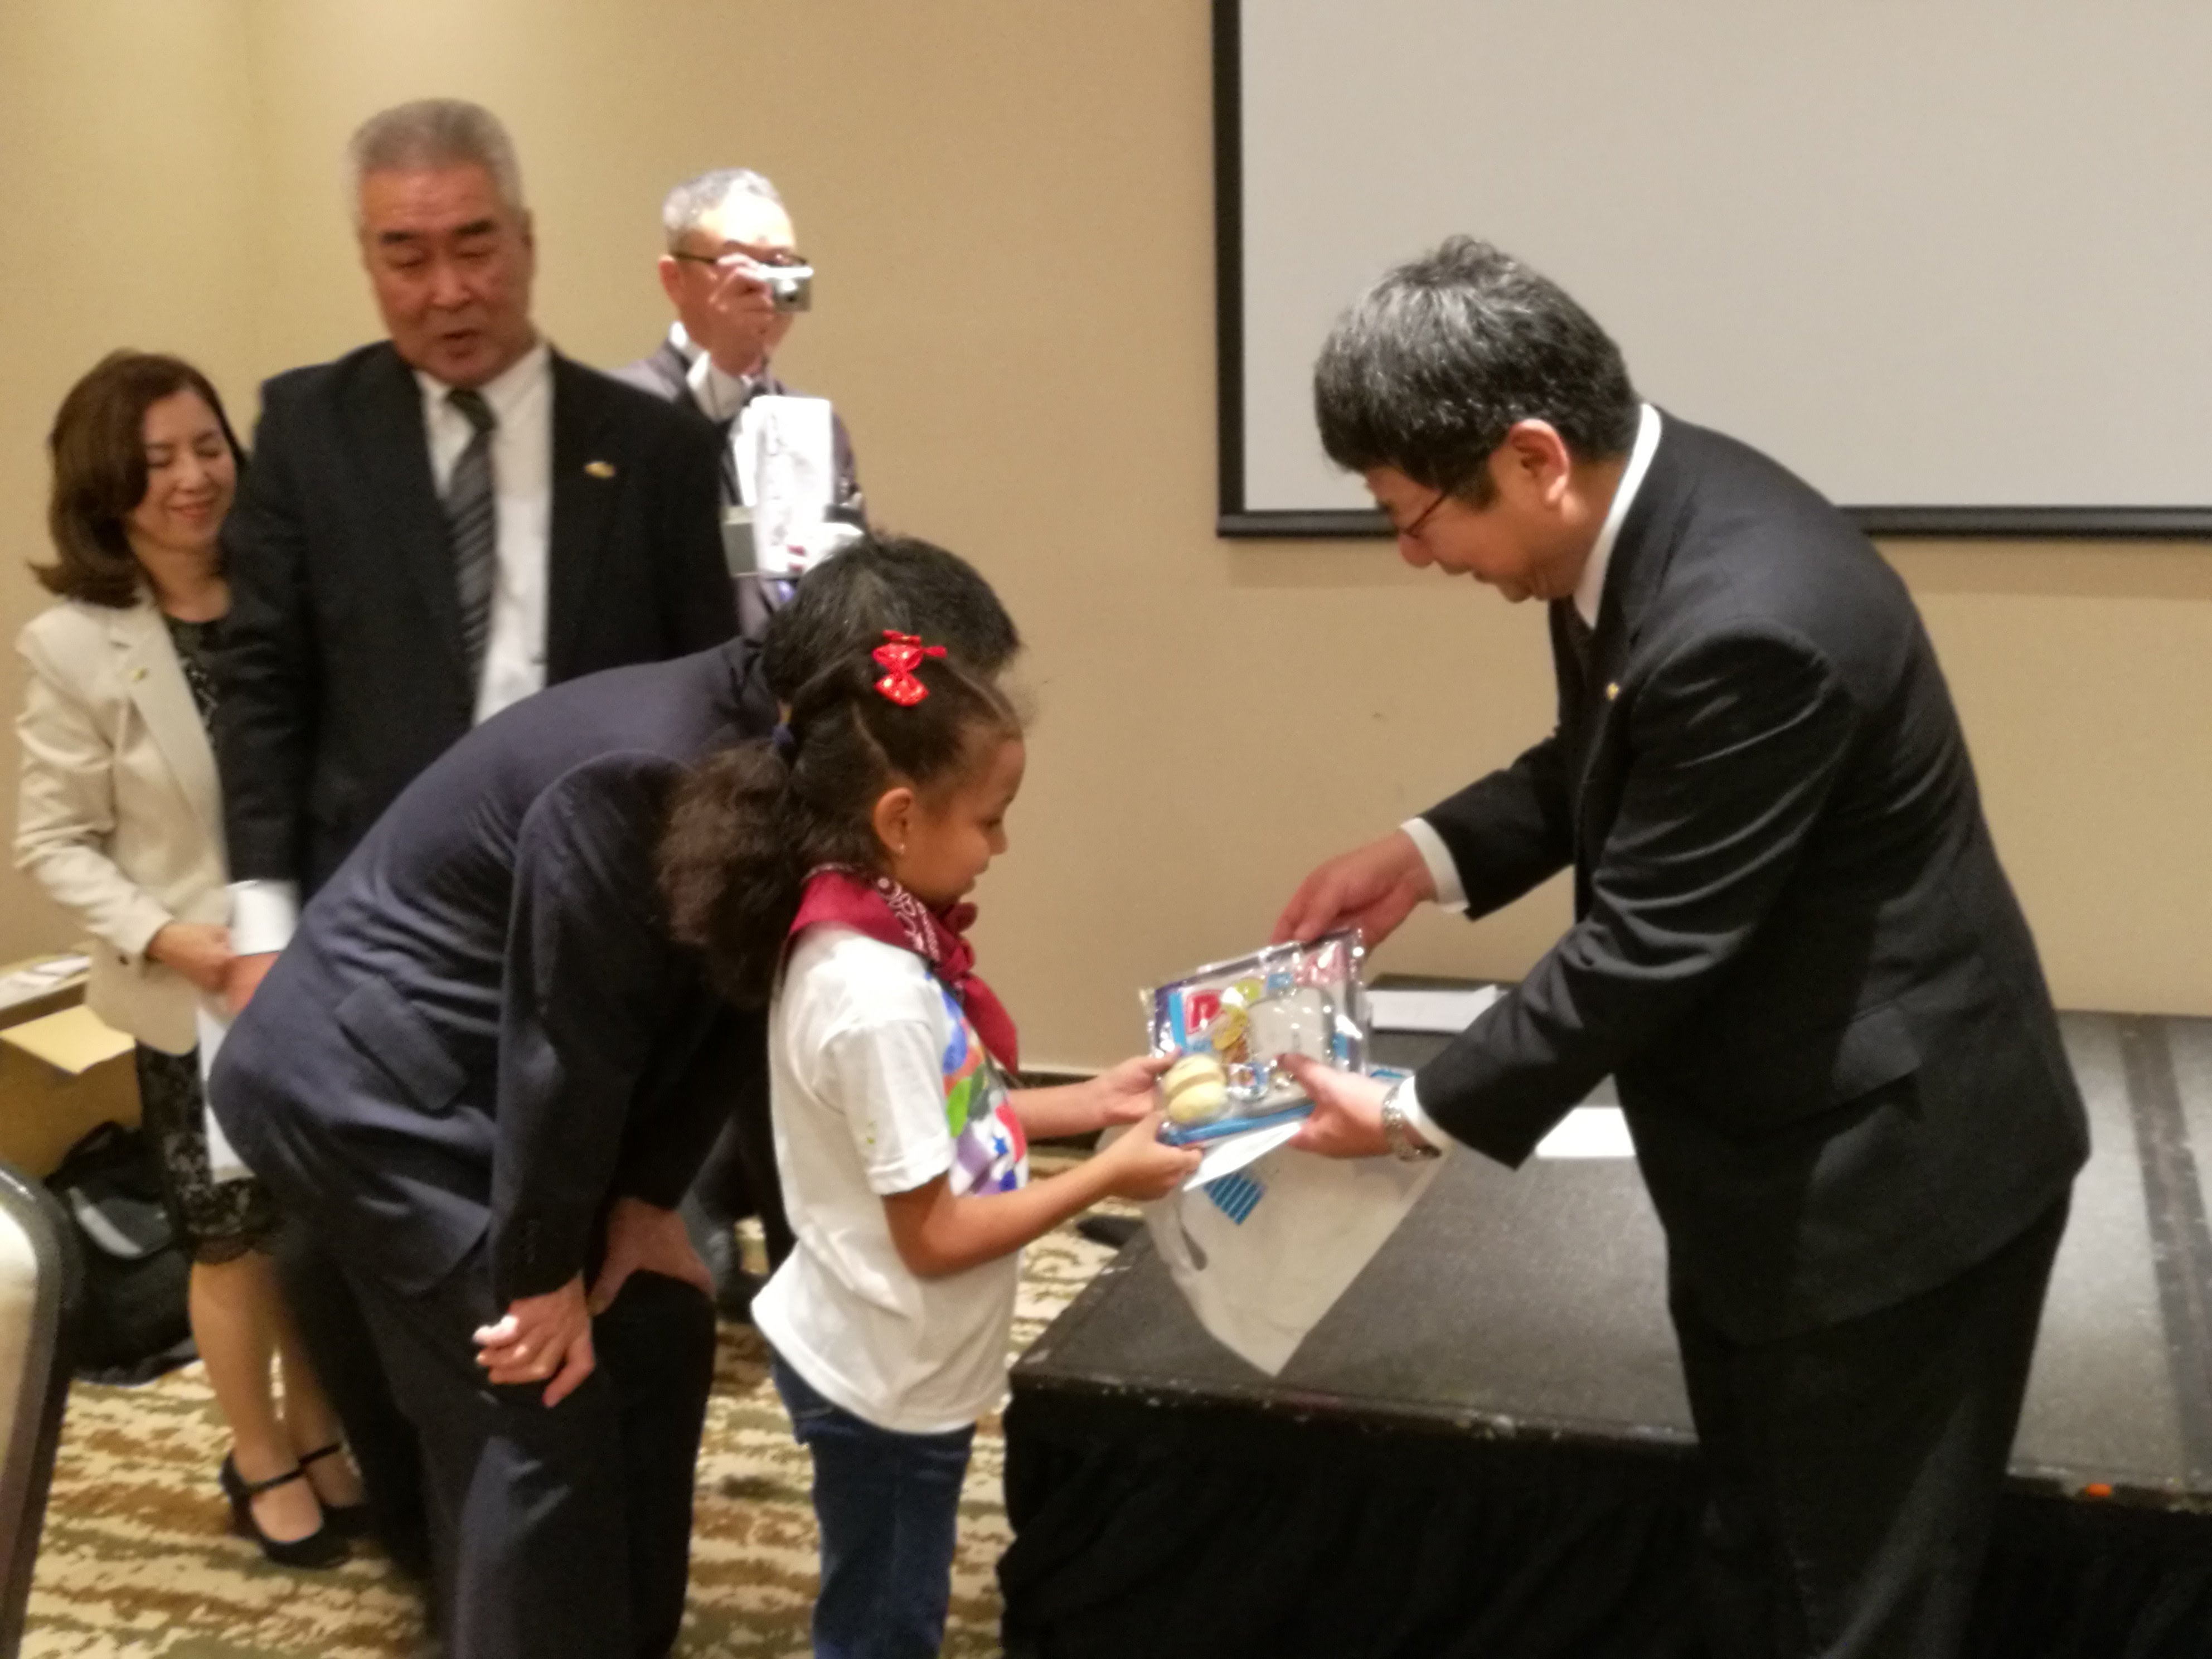 Deputy Mayor of Imabari, Mr. Hiroshi Ochi, giving a commemorative gifts to the students of primary school of Panama.